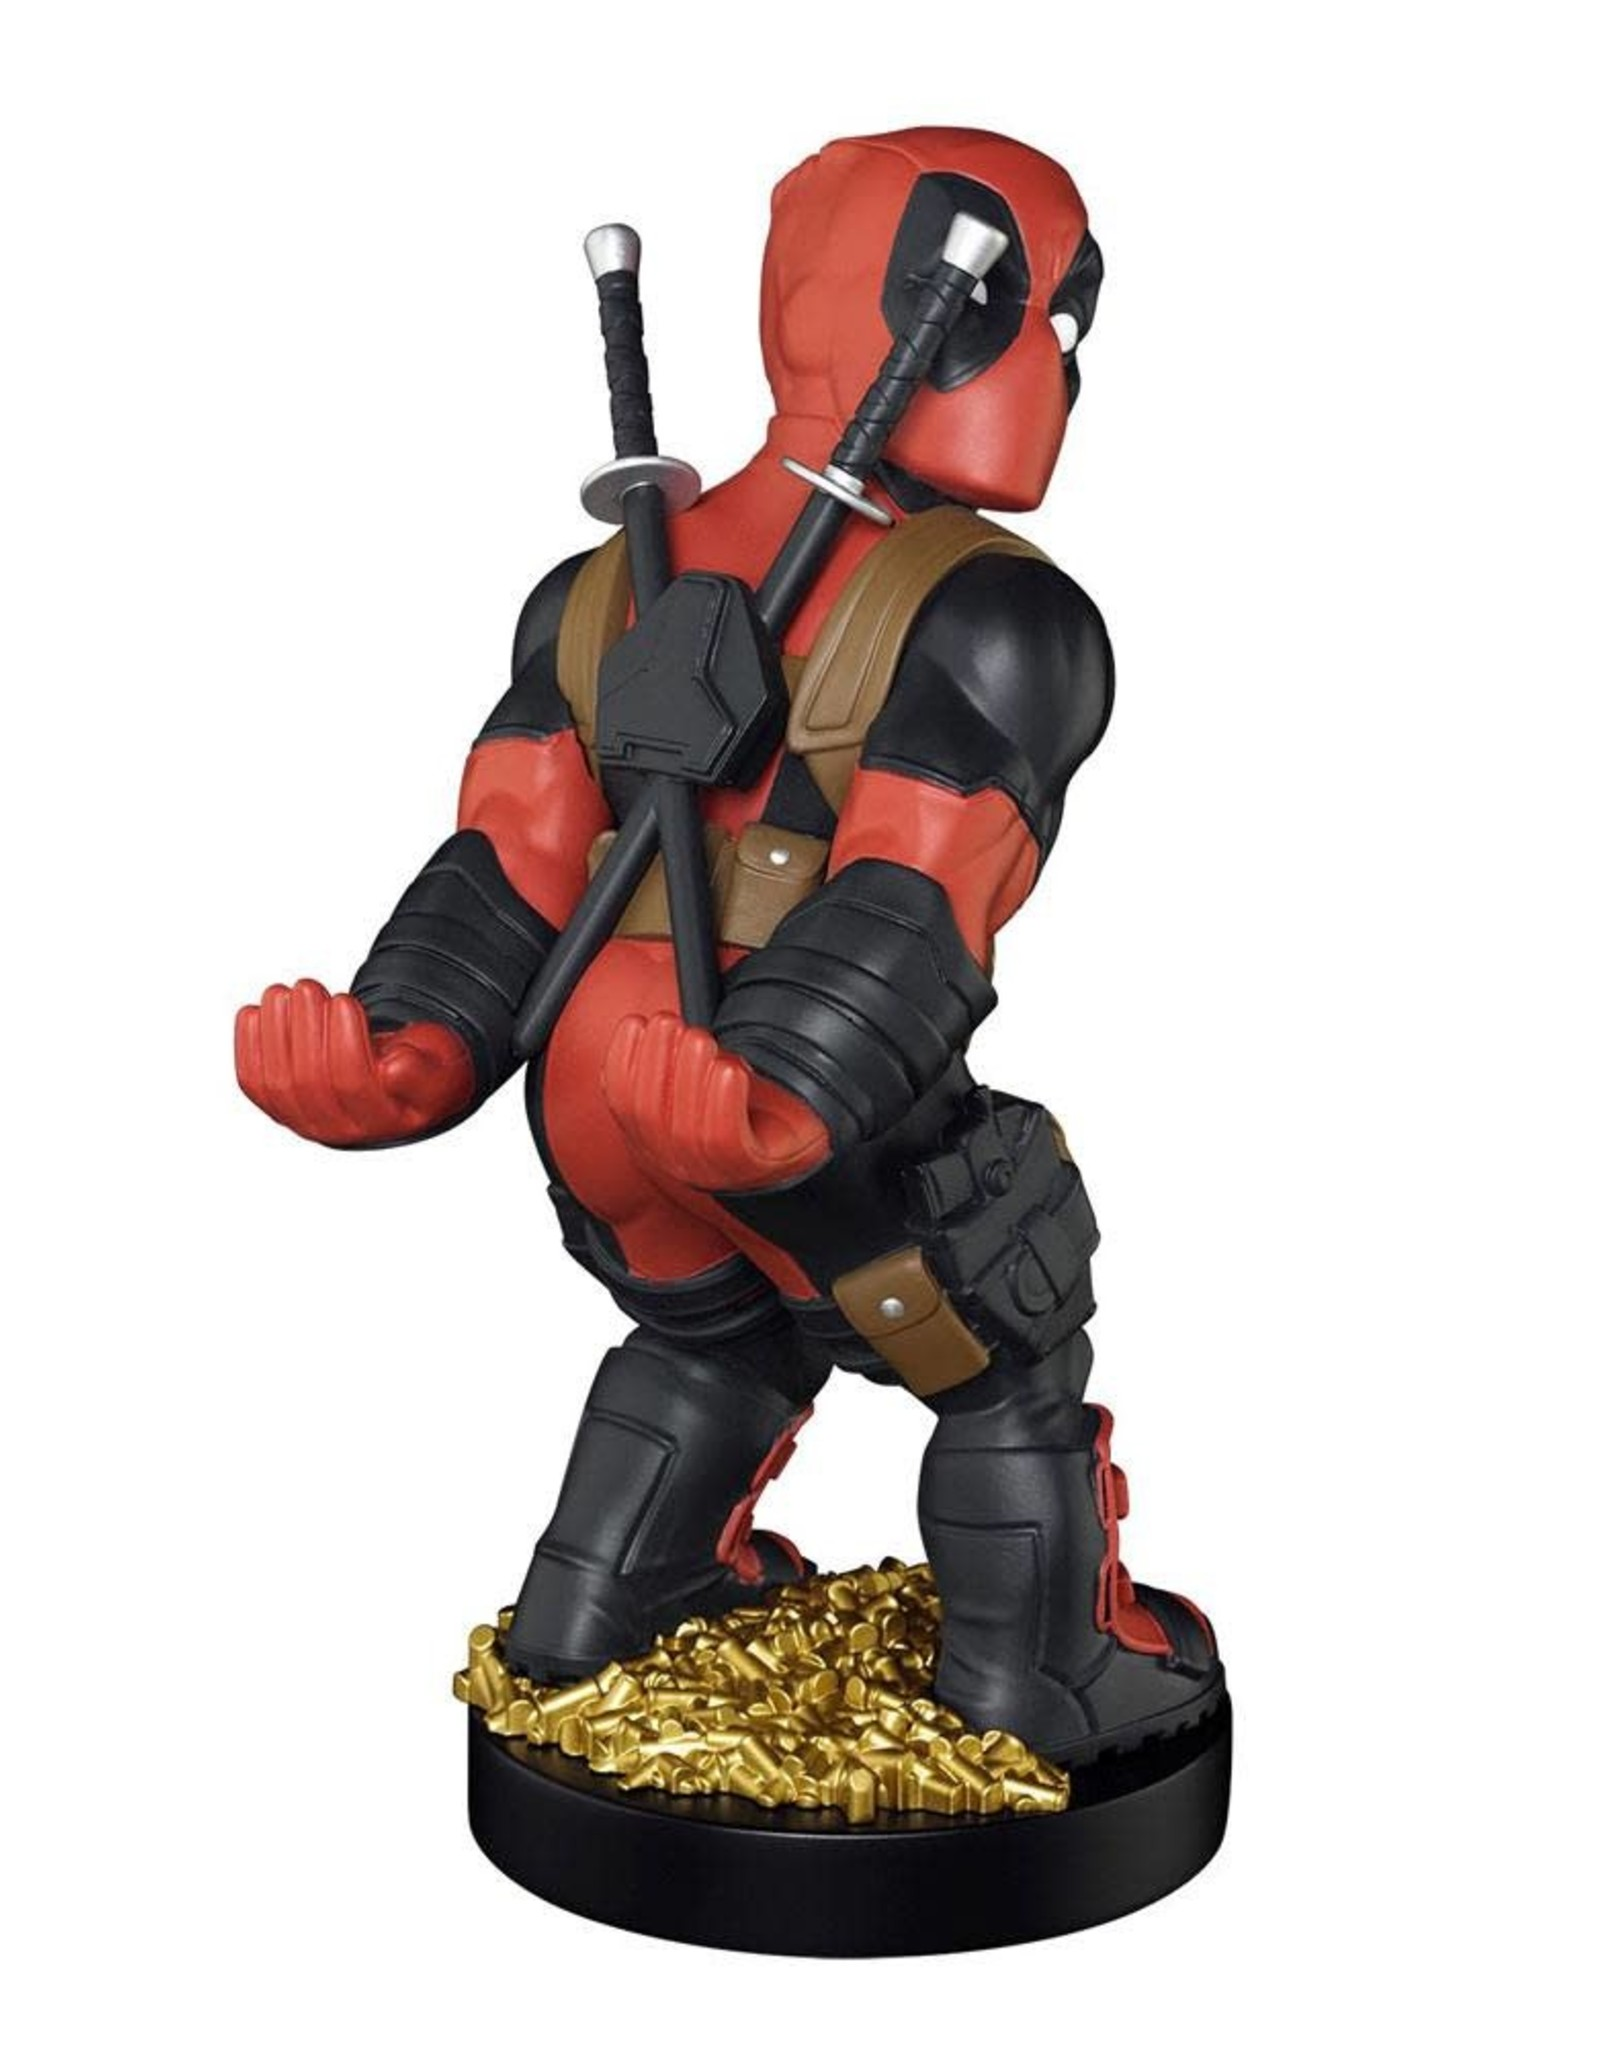 Exquisite Gaming DEADPOOL Cable Guys Charging Holder 20cm - Rear Version